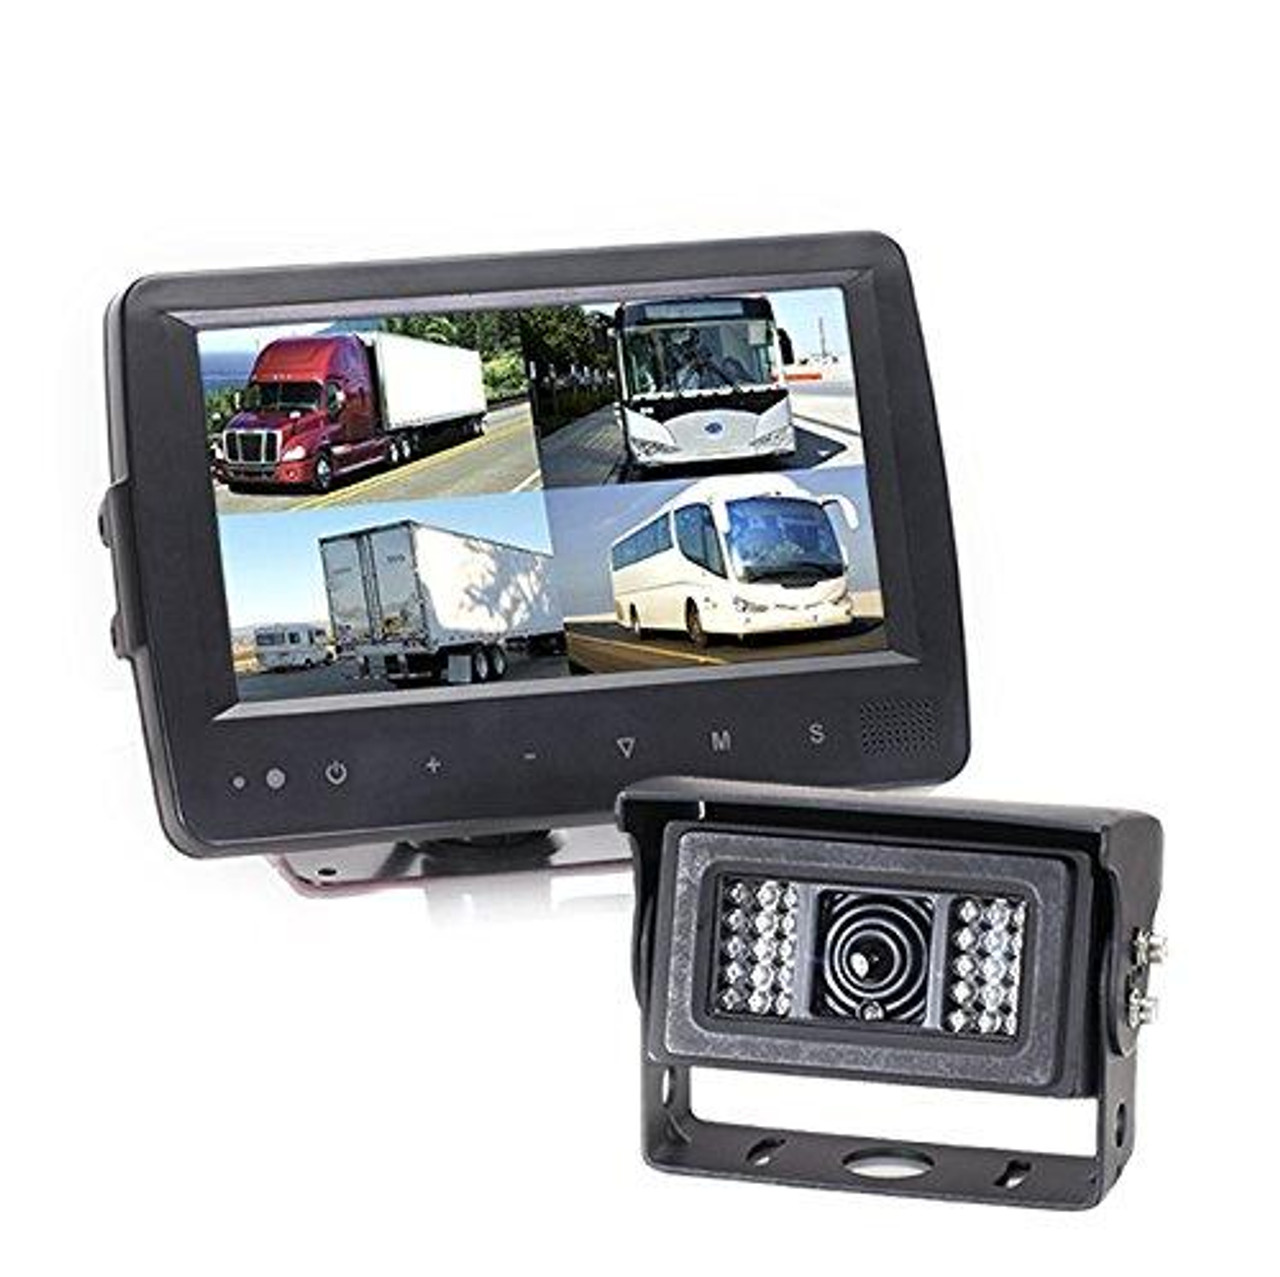 Backup Camera System with Waterproof Quad View Monitor and Heated Camera, 66' Cable